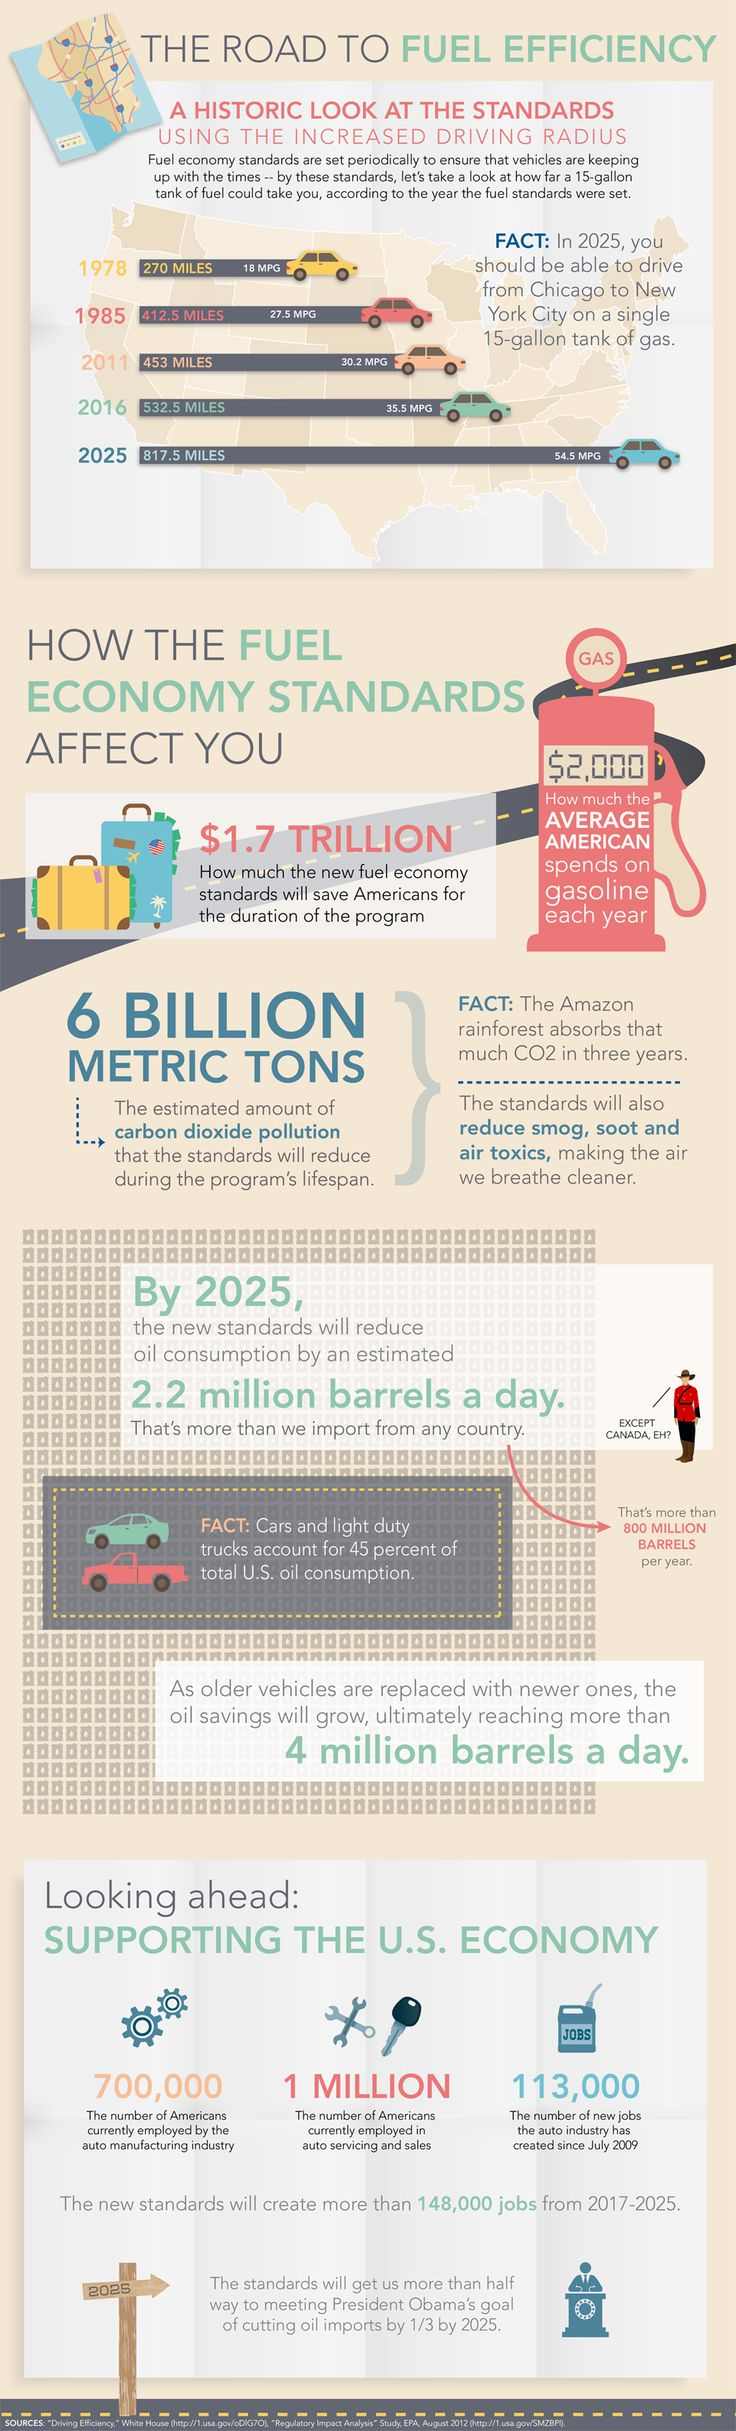 The road to fuel efficiency infographic